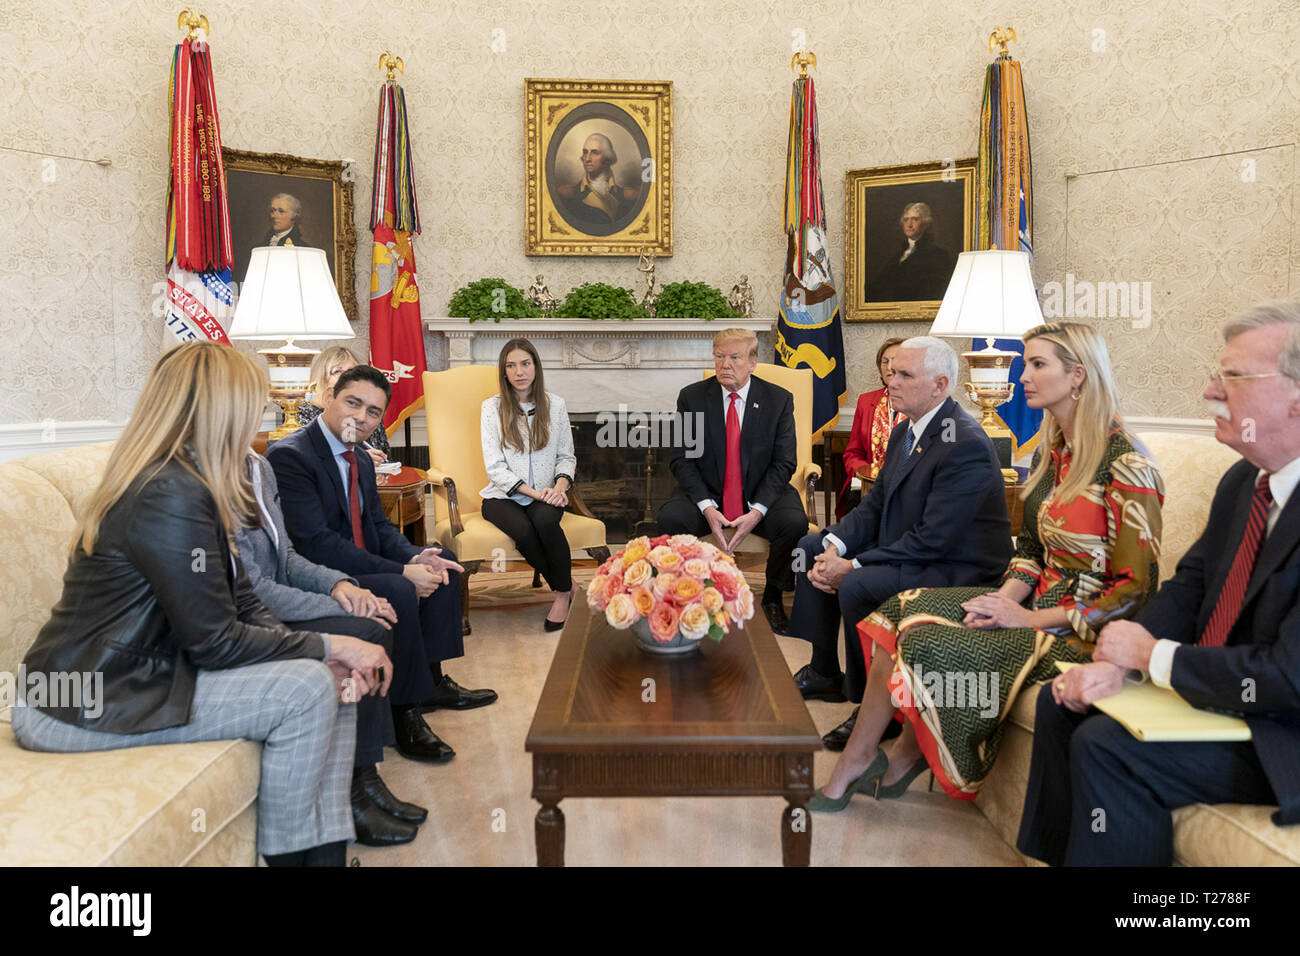 President Donald J. trump meets with Fabiana Rosales de Guaido, the First Lady of the Bolivarian Republic of Venezuela, Wednesday, March 27, 2019, in the Oval Office of the White House  People:  President Donald Trump - Stock Image